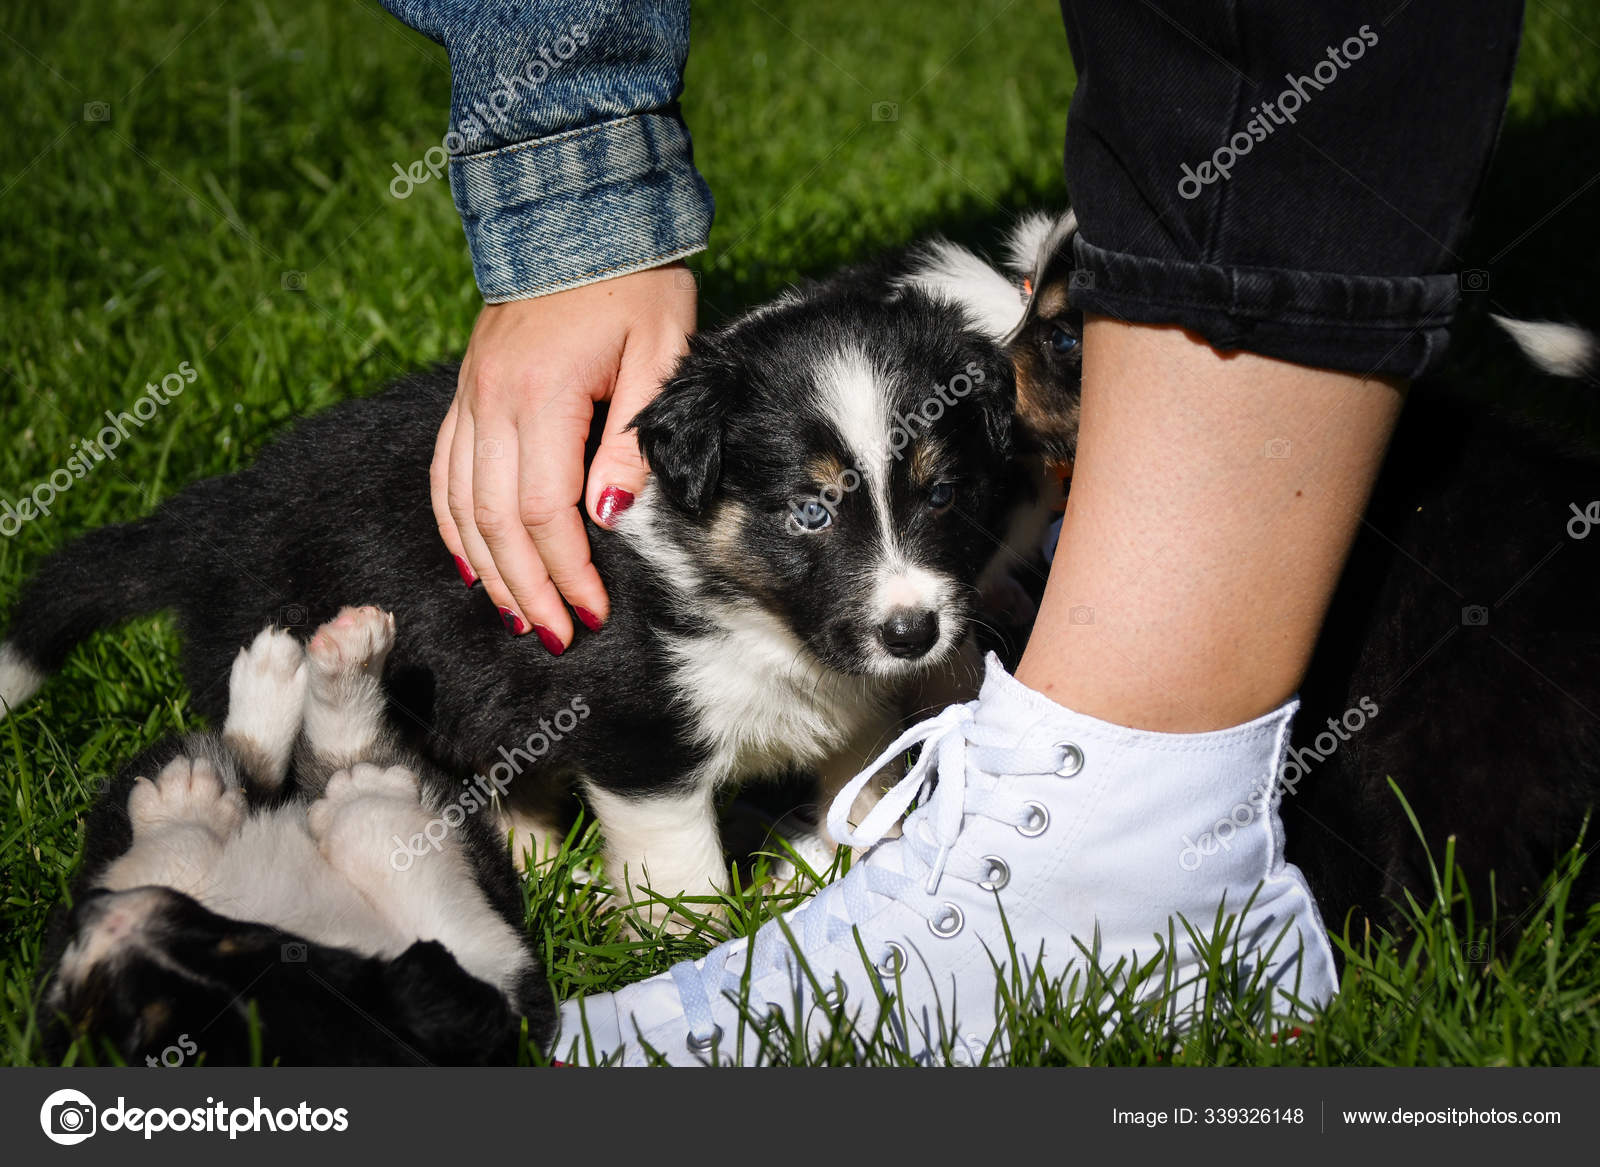 Six Week Old Border Collie Puppy Tricolor Teddybear Look Ambitious Stock Photo C Dodafoto 339326148